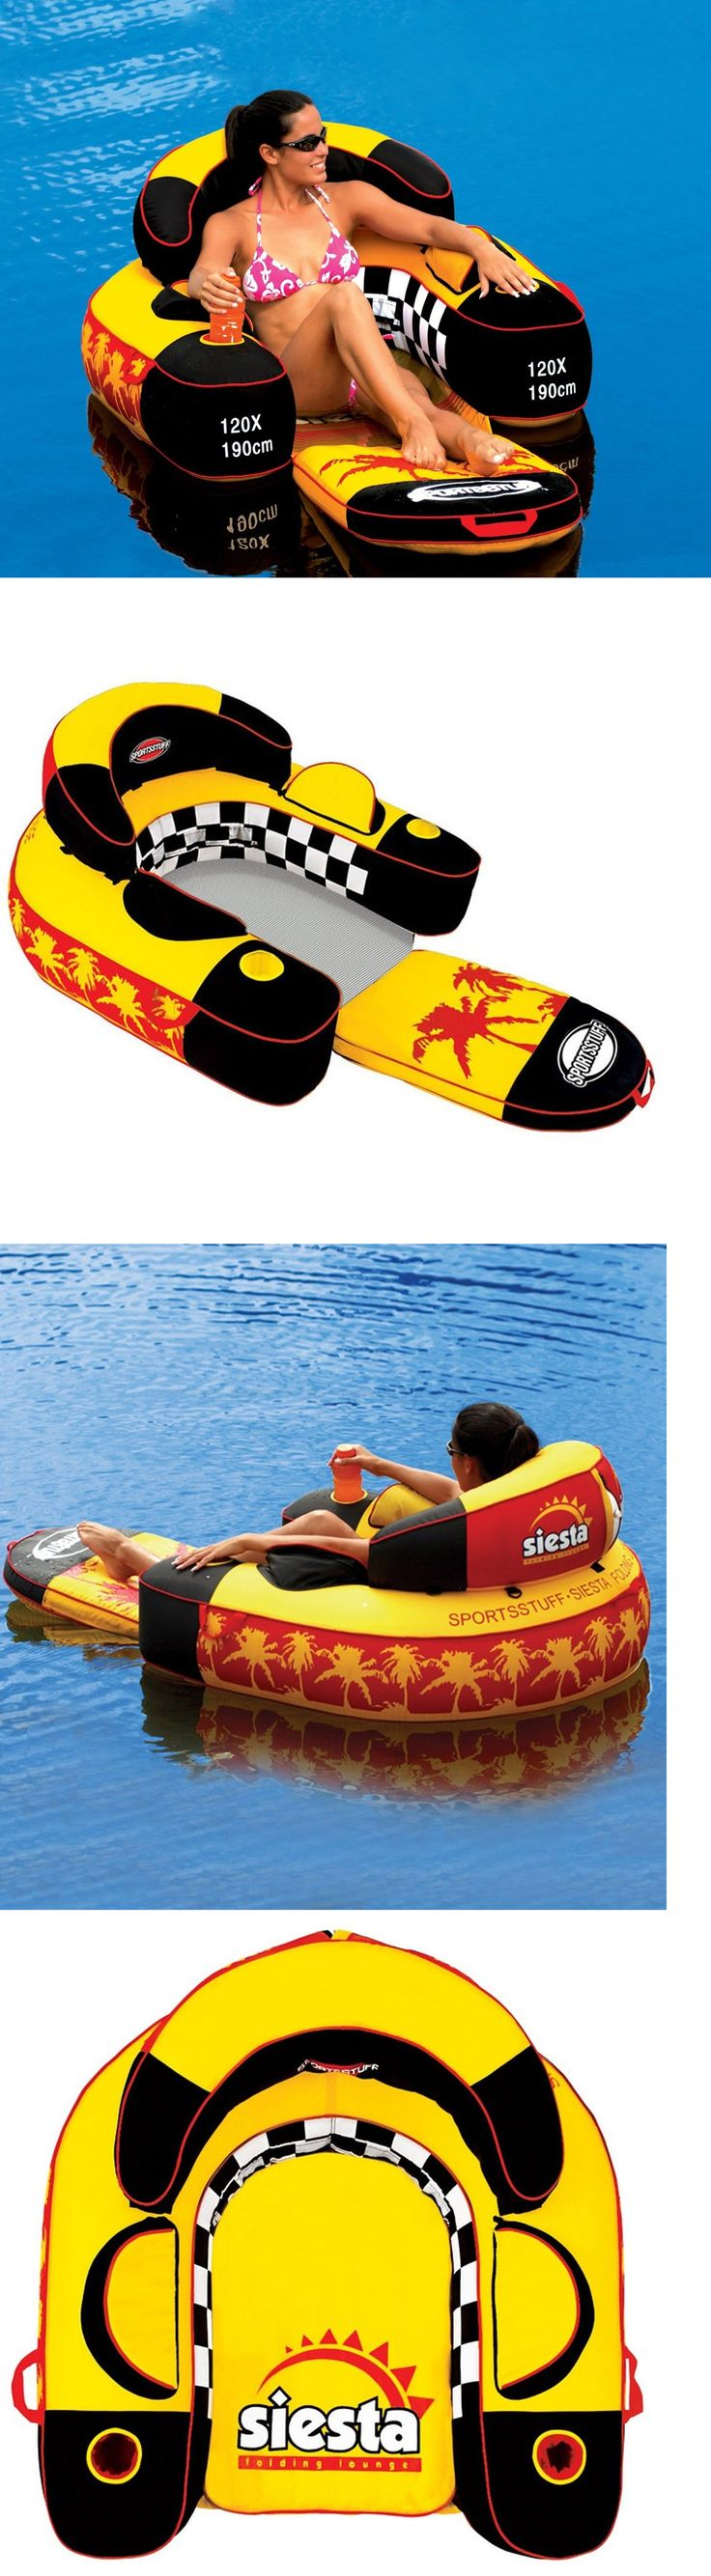 Inflatable Floats and Tubes 79801: River Rafting Float Lake Pool Tube Inflatable Lounge Chair Water Toy Swimming -> BUY IT NOW ONLY: $84.37 on eBay!